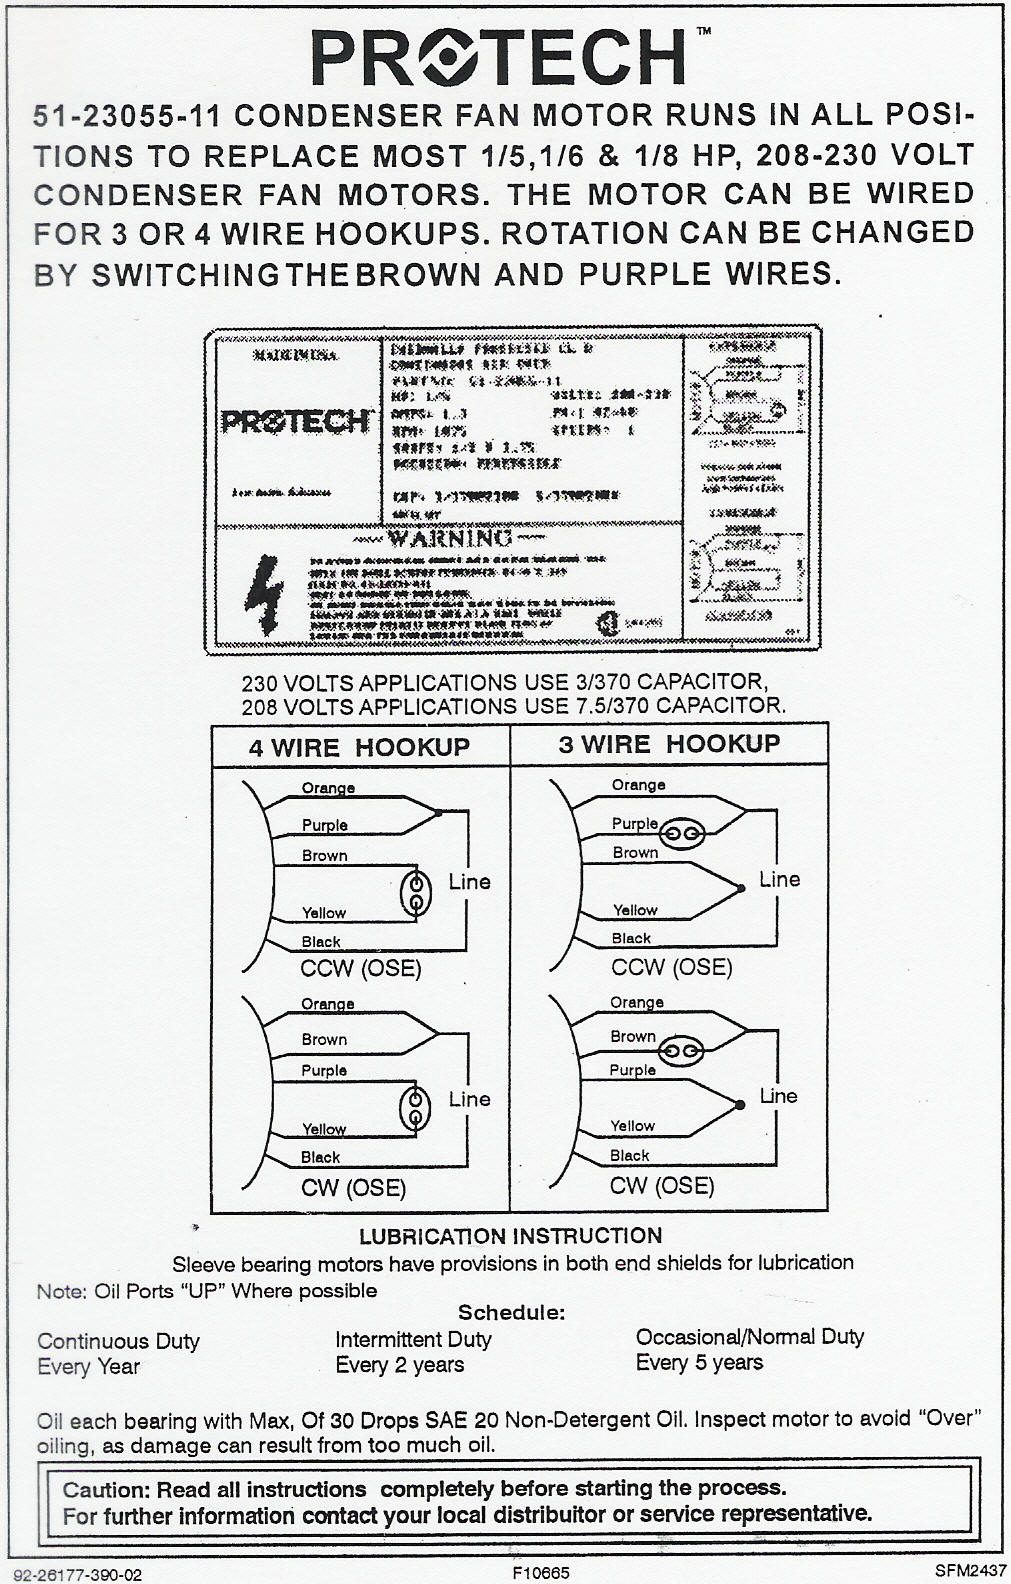 51 23055 11 wiring diagram rheem ruud condenser fan motor 51 23055 11 wiring diagram tempstar 2200 air conditioner wiring diagram at crackthecode.co